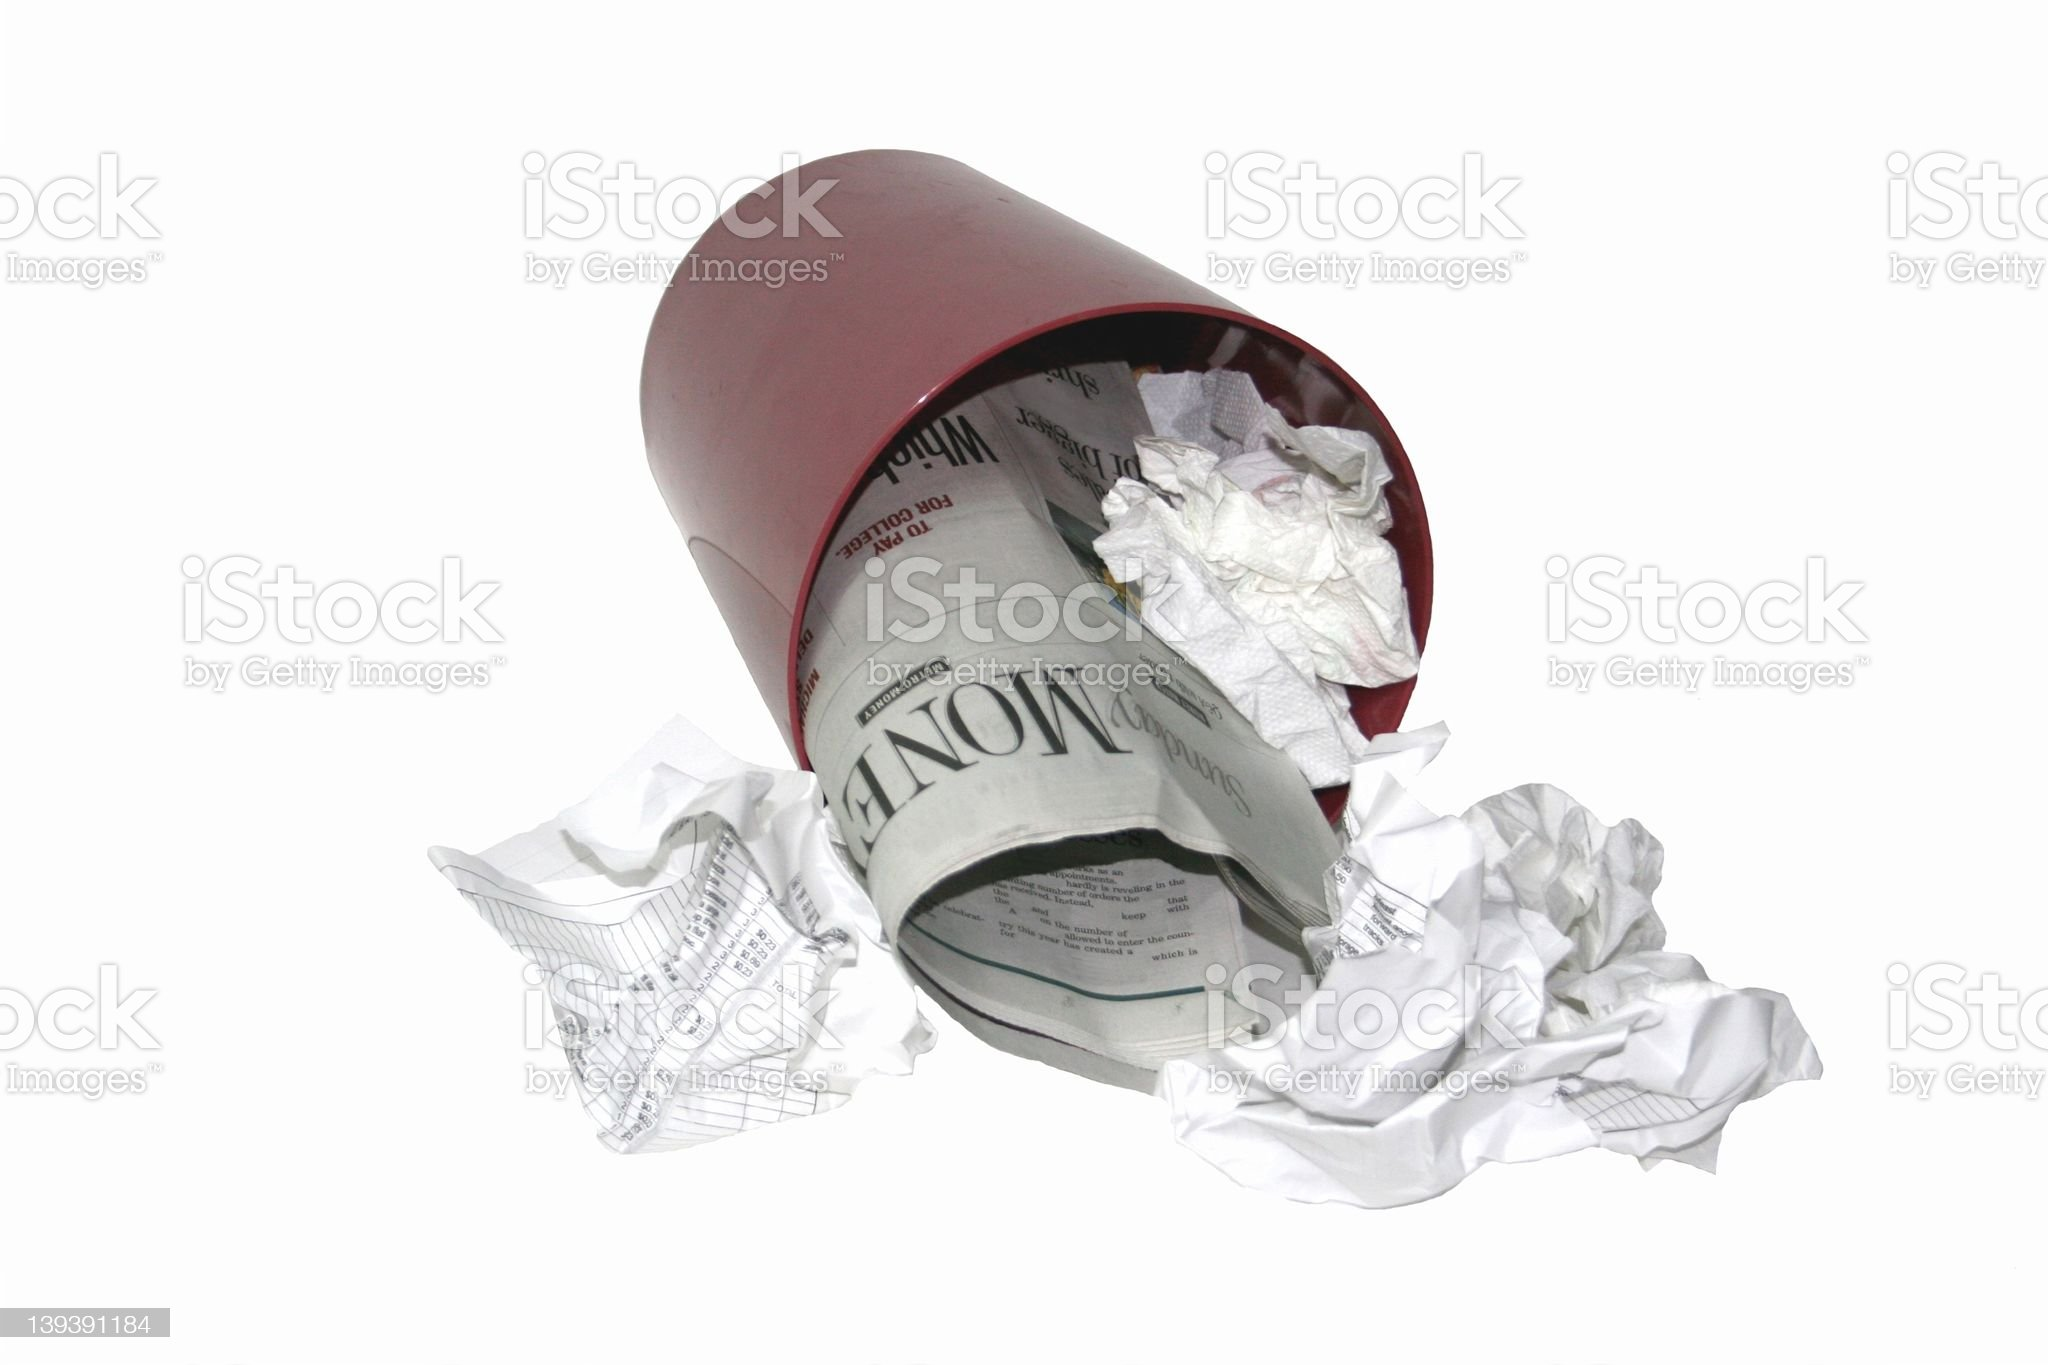 Can ofTrash3 royalty-free stock photo